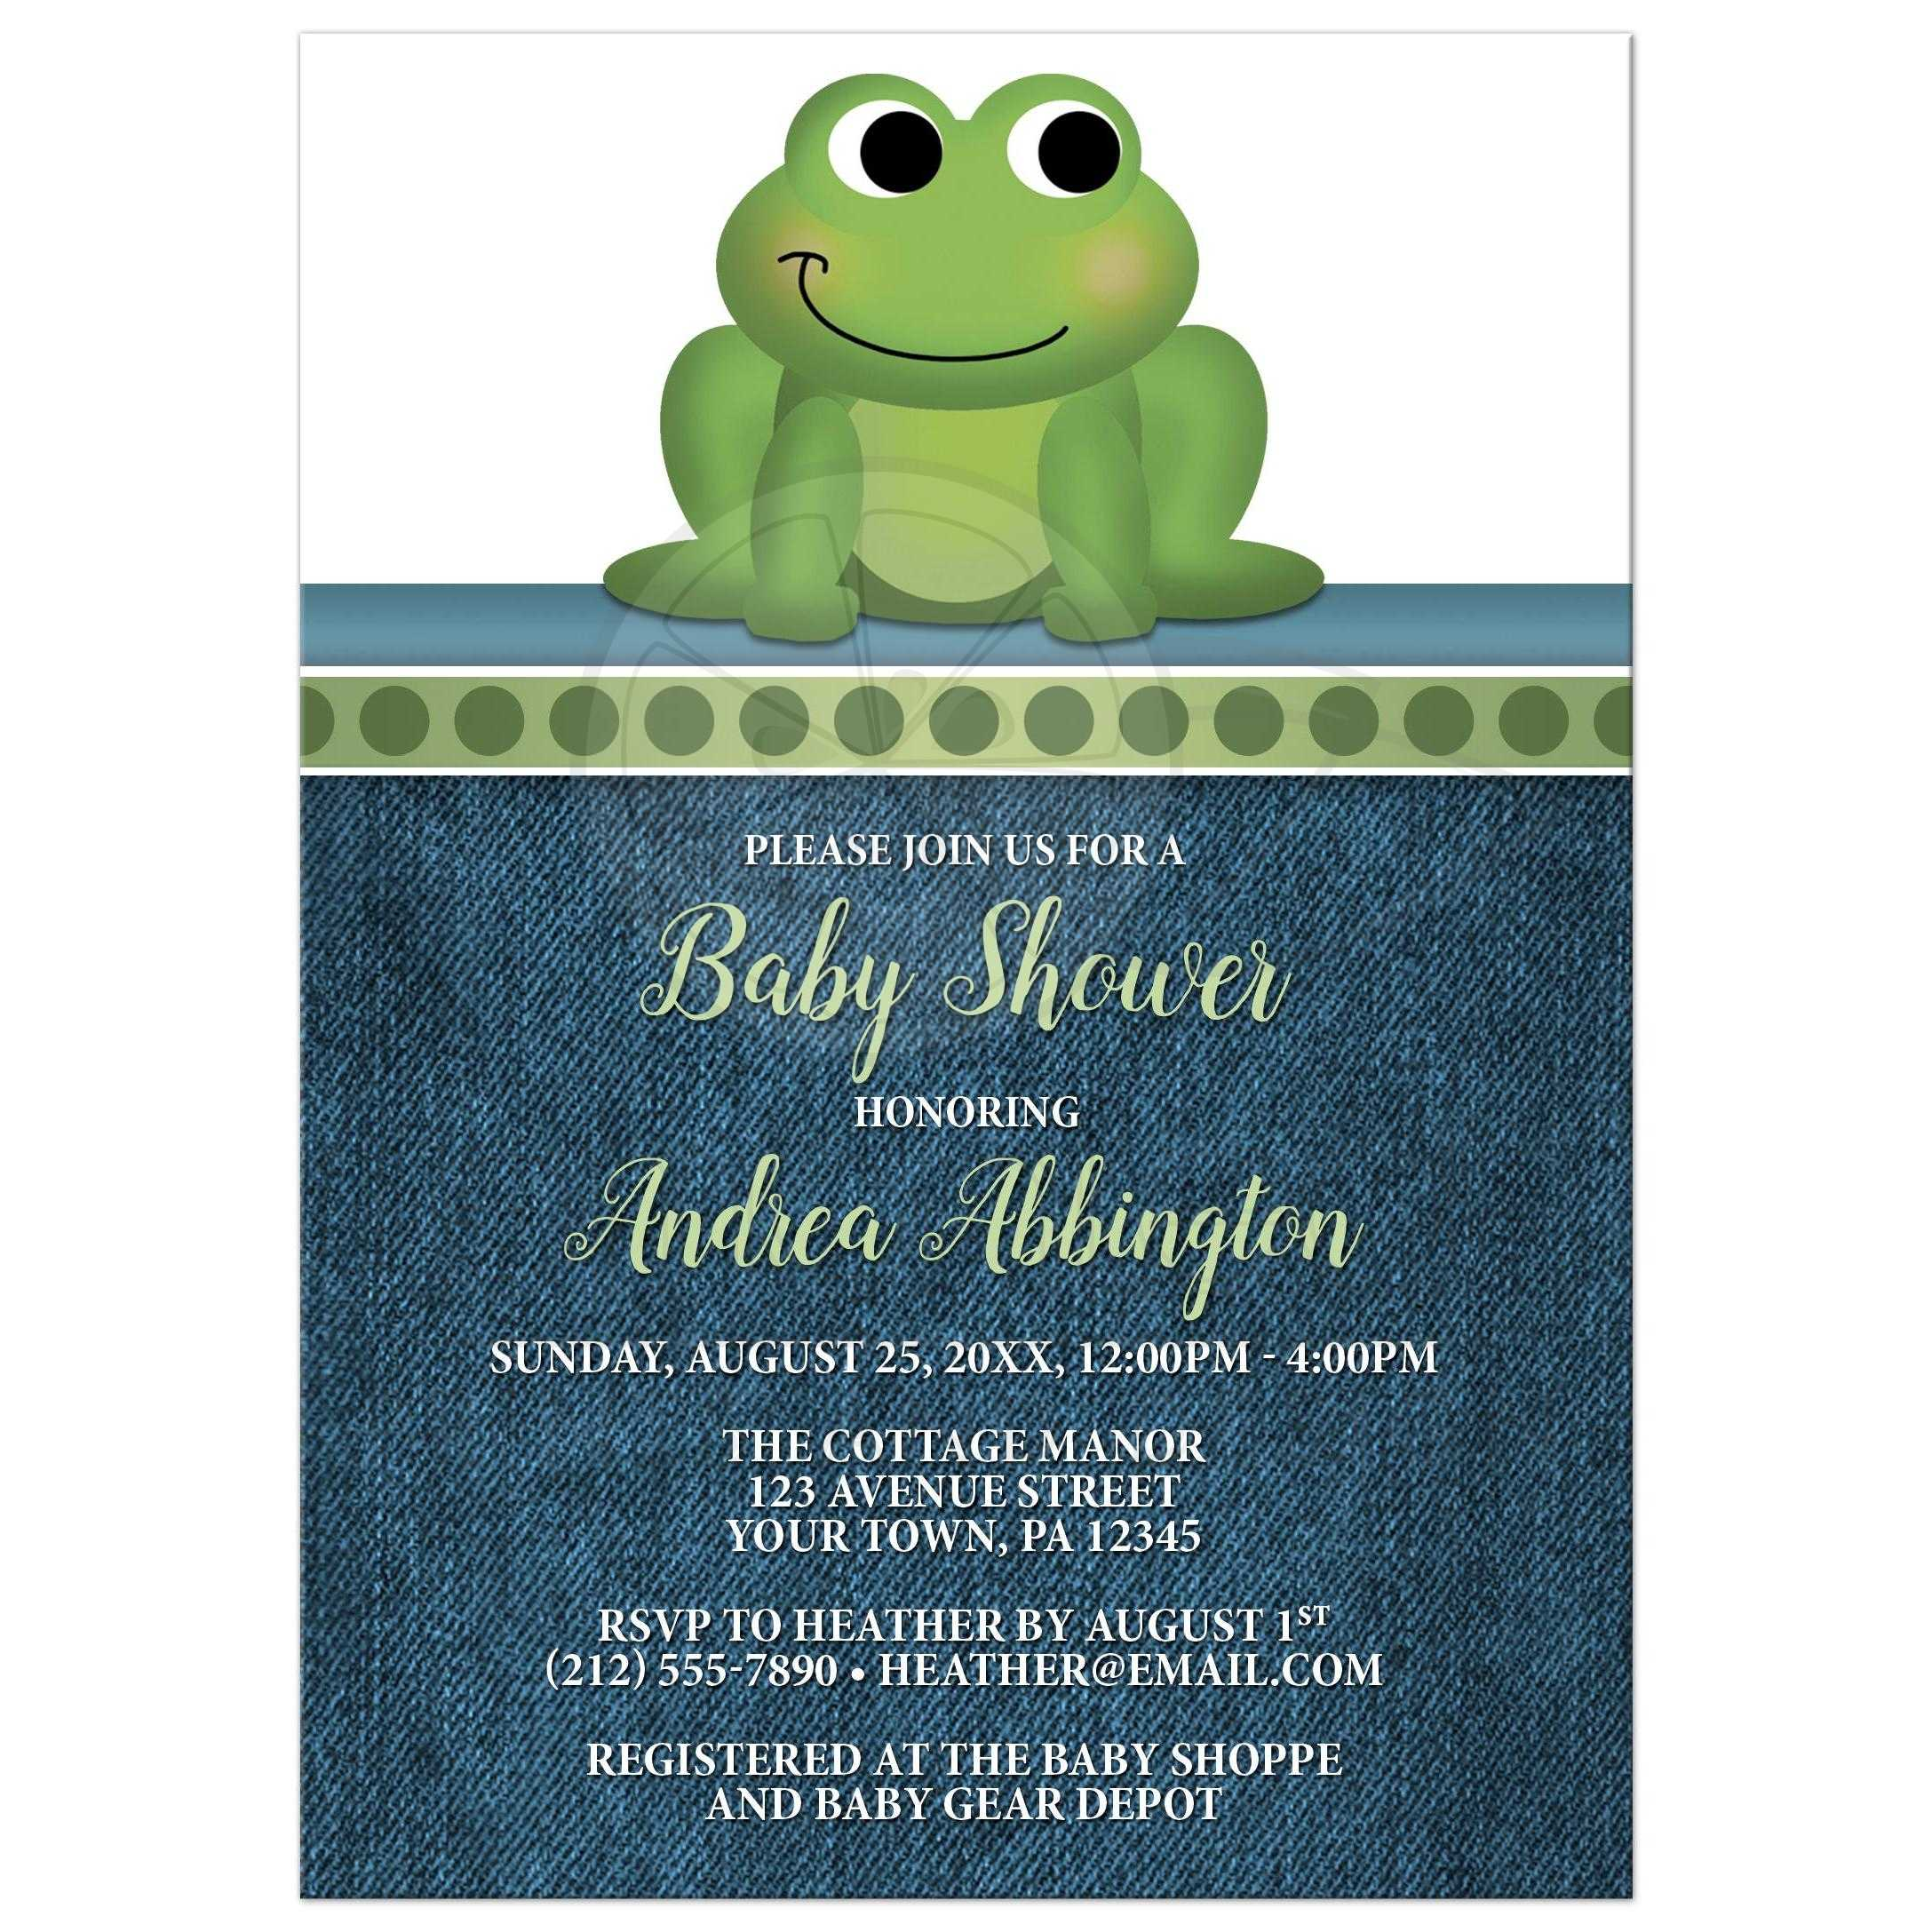 shower baby shower invitations cute frog green rustic blue denim